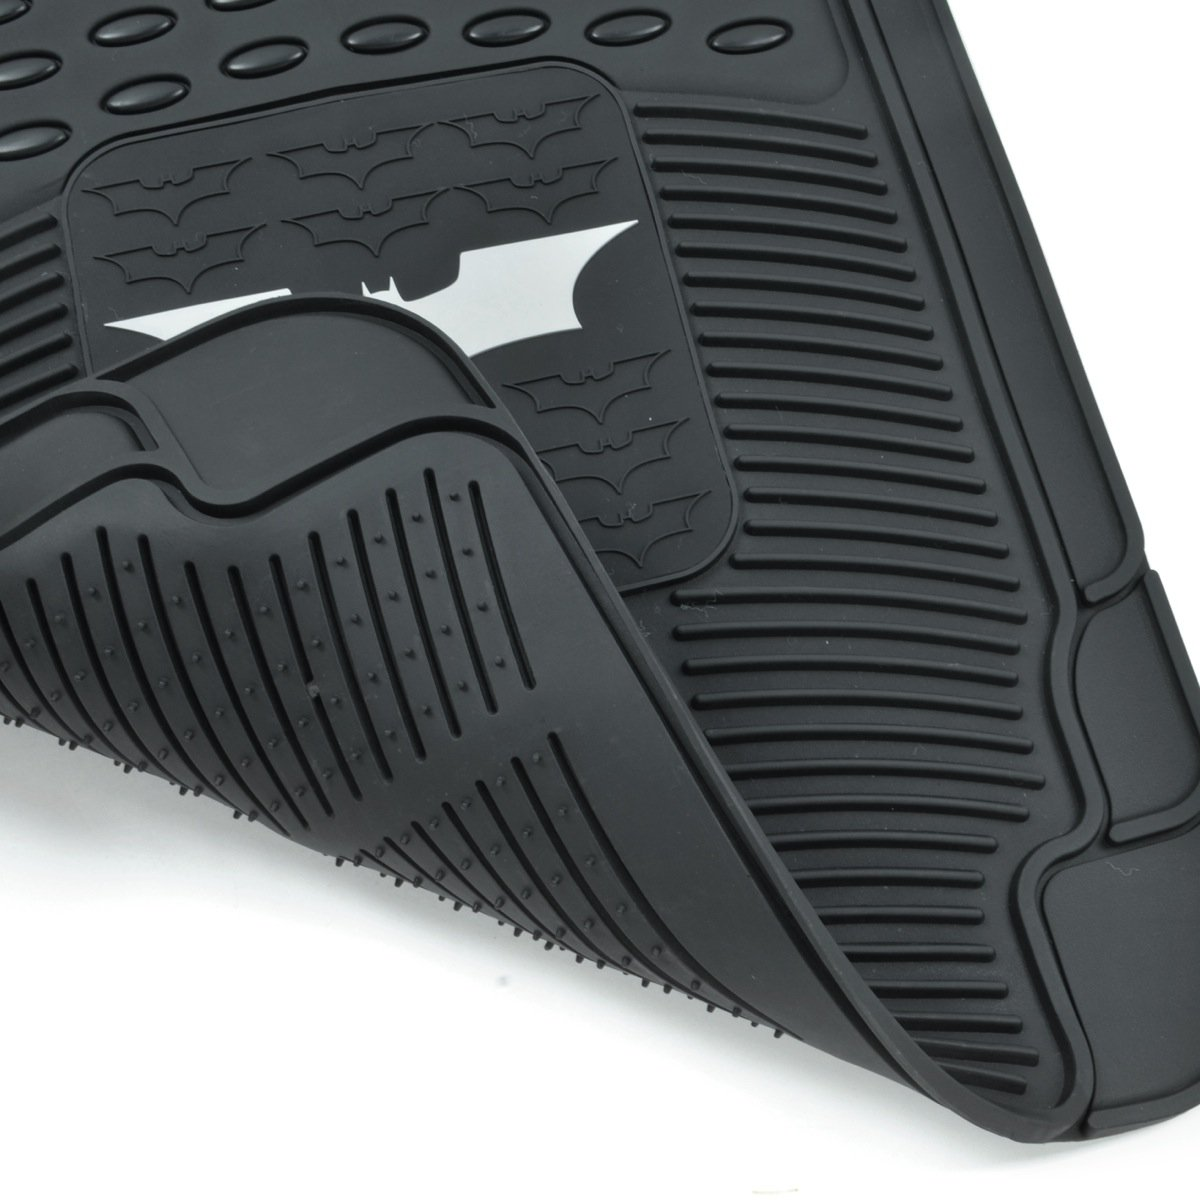 Warner Brothers Trimmable to Fit Dark Knight Batman Rubber Floor Mats for Car 3 PC Set